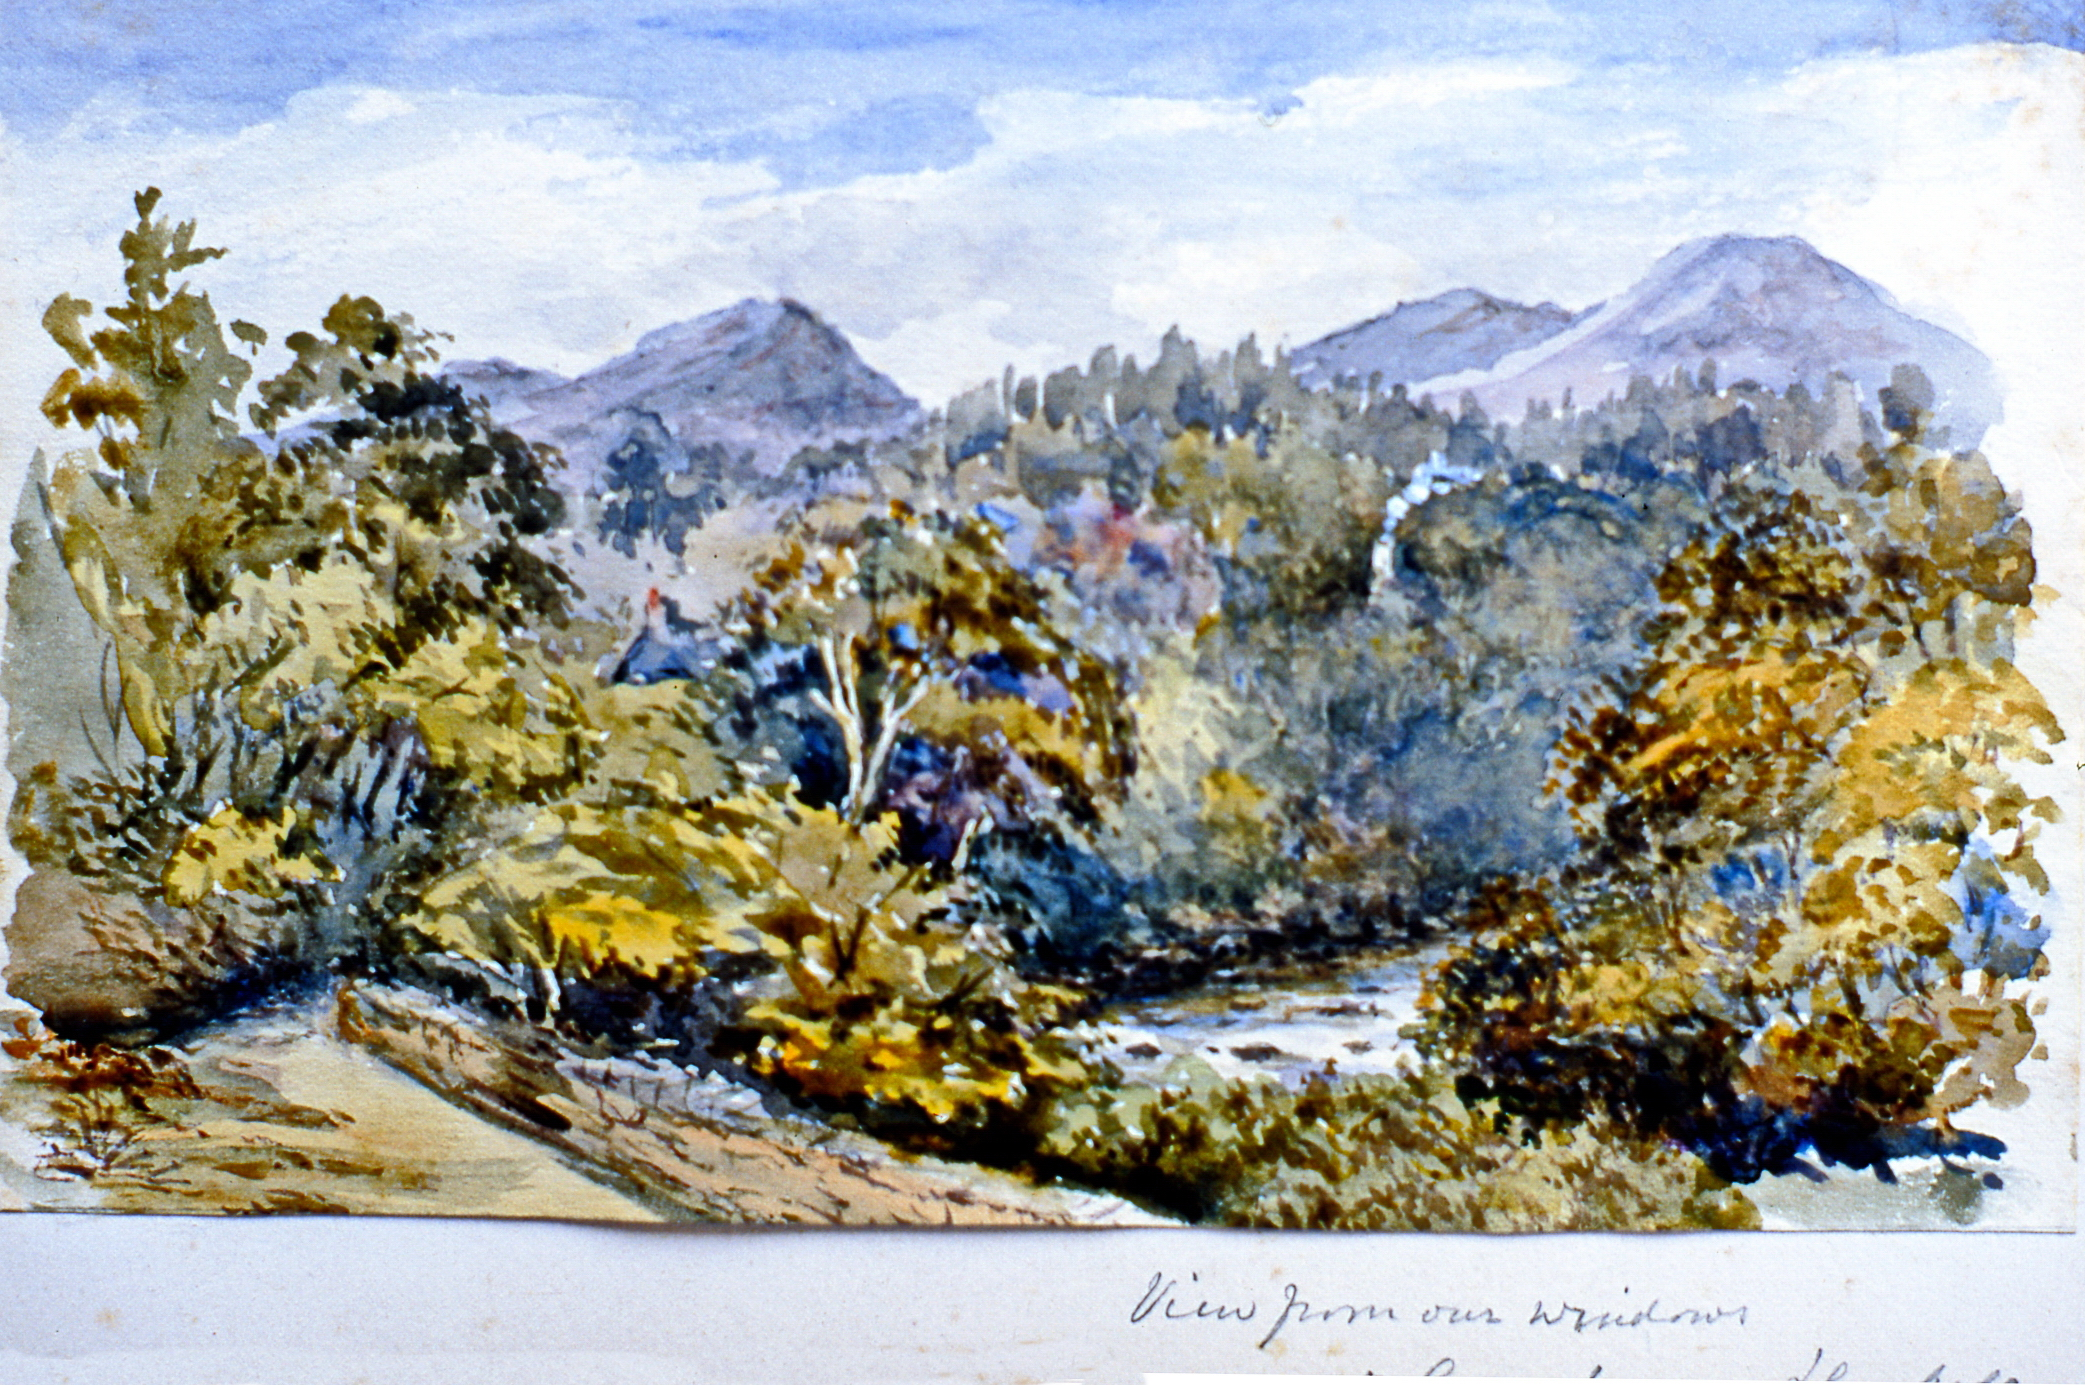 """View from our Windows at Groqufryn (?) - Daubeds (?) , n.d.,Julia Bullock Webster, watercolour on paper, 5 1/4""""x 9"""", 2003.02.55, gift of The Grist Mill at Keremeos"""